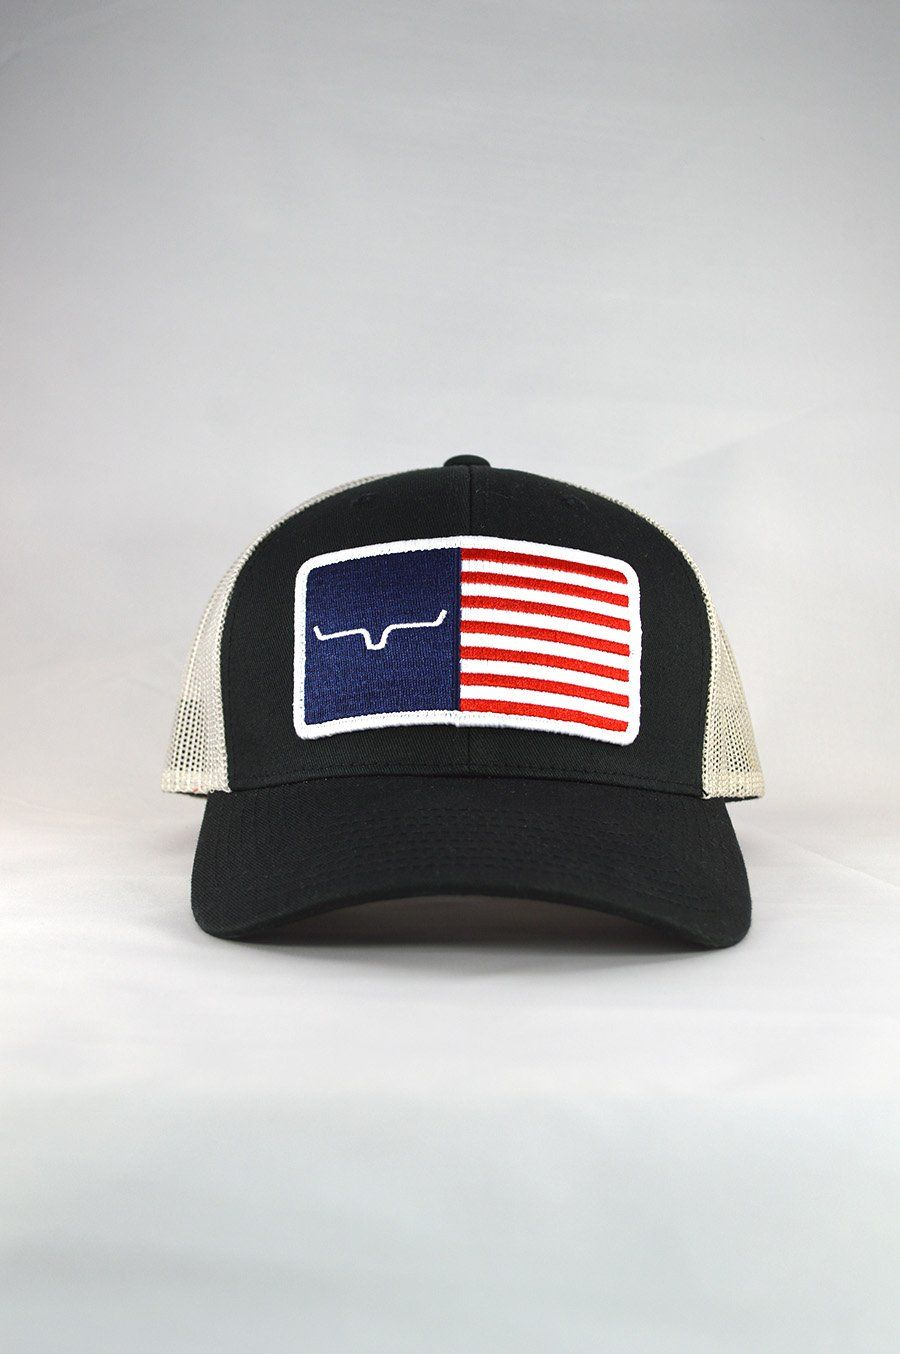 b6a9056c981d4 American Trucker | Products | Kimes ranch, American flag patch, Cap